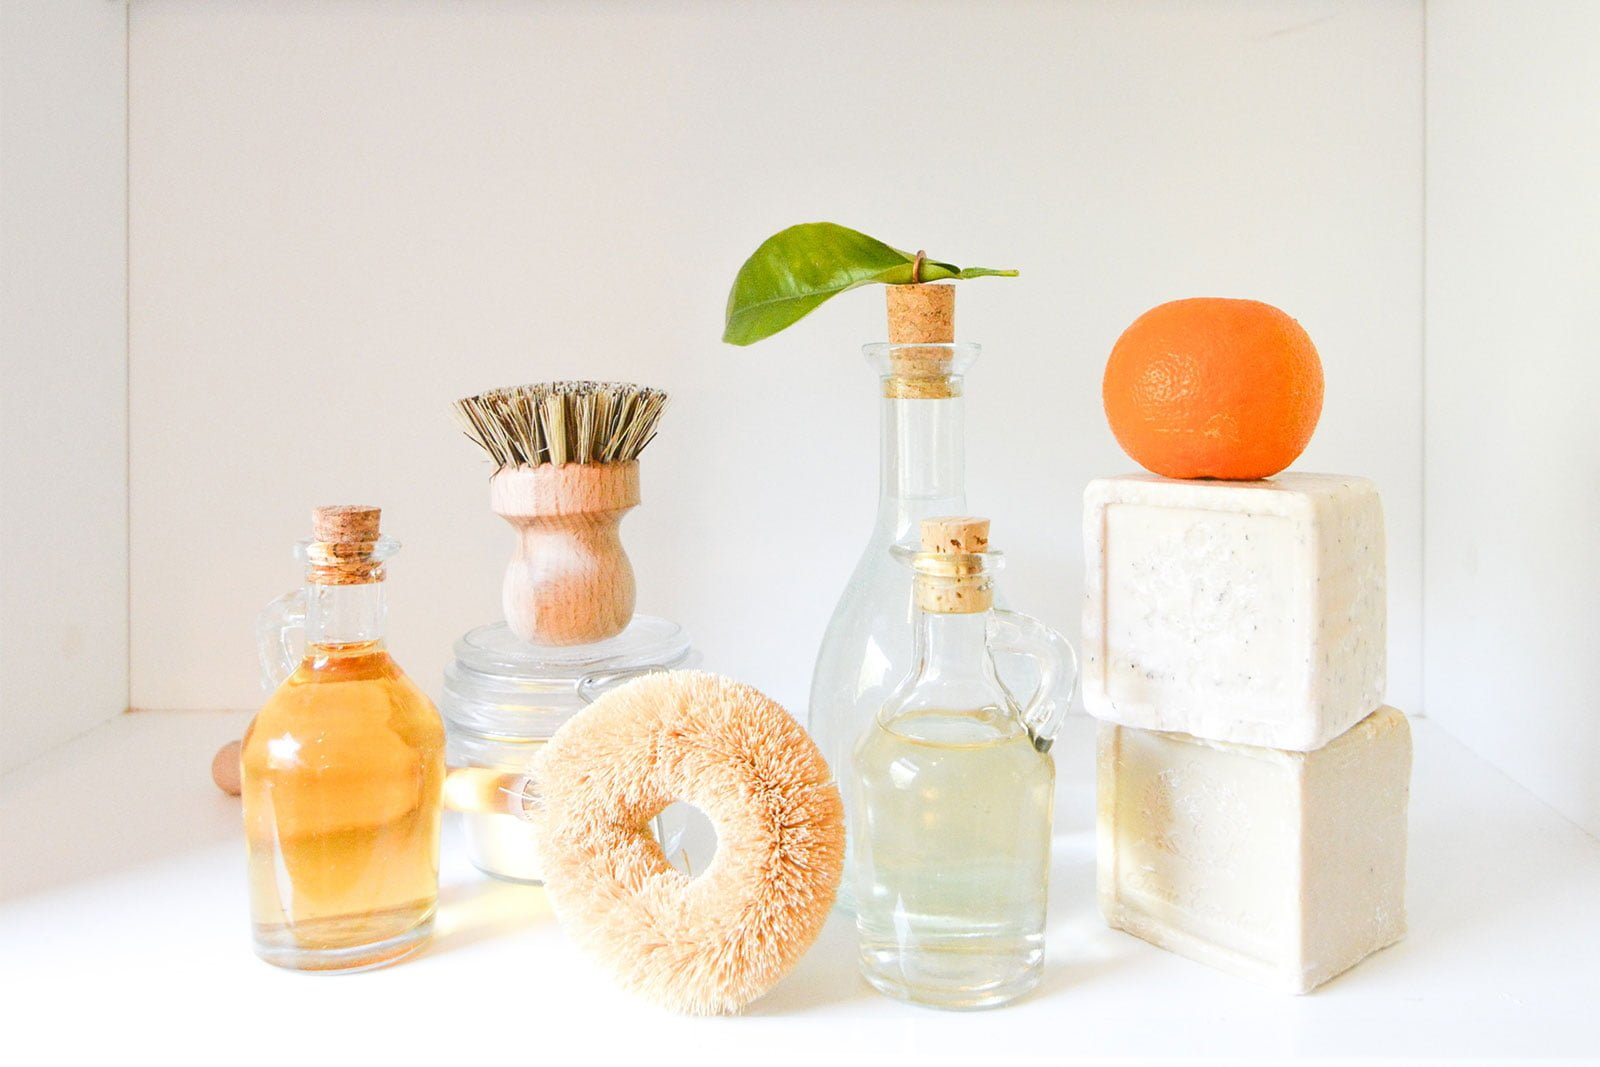 Soap and beauty products on a counter